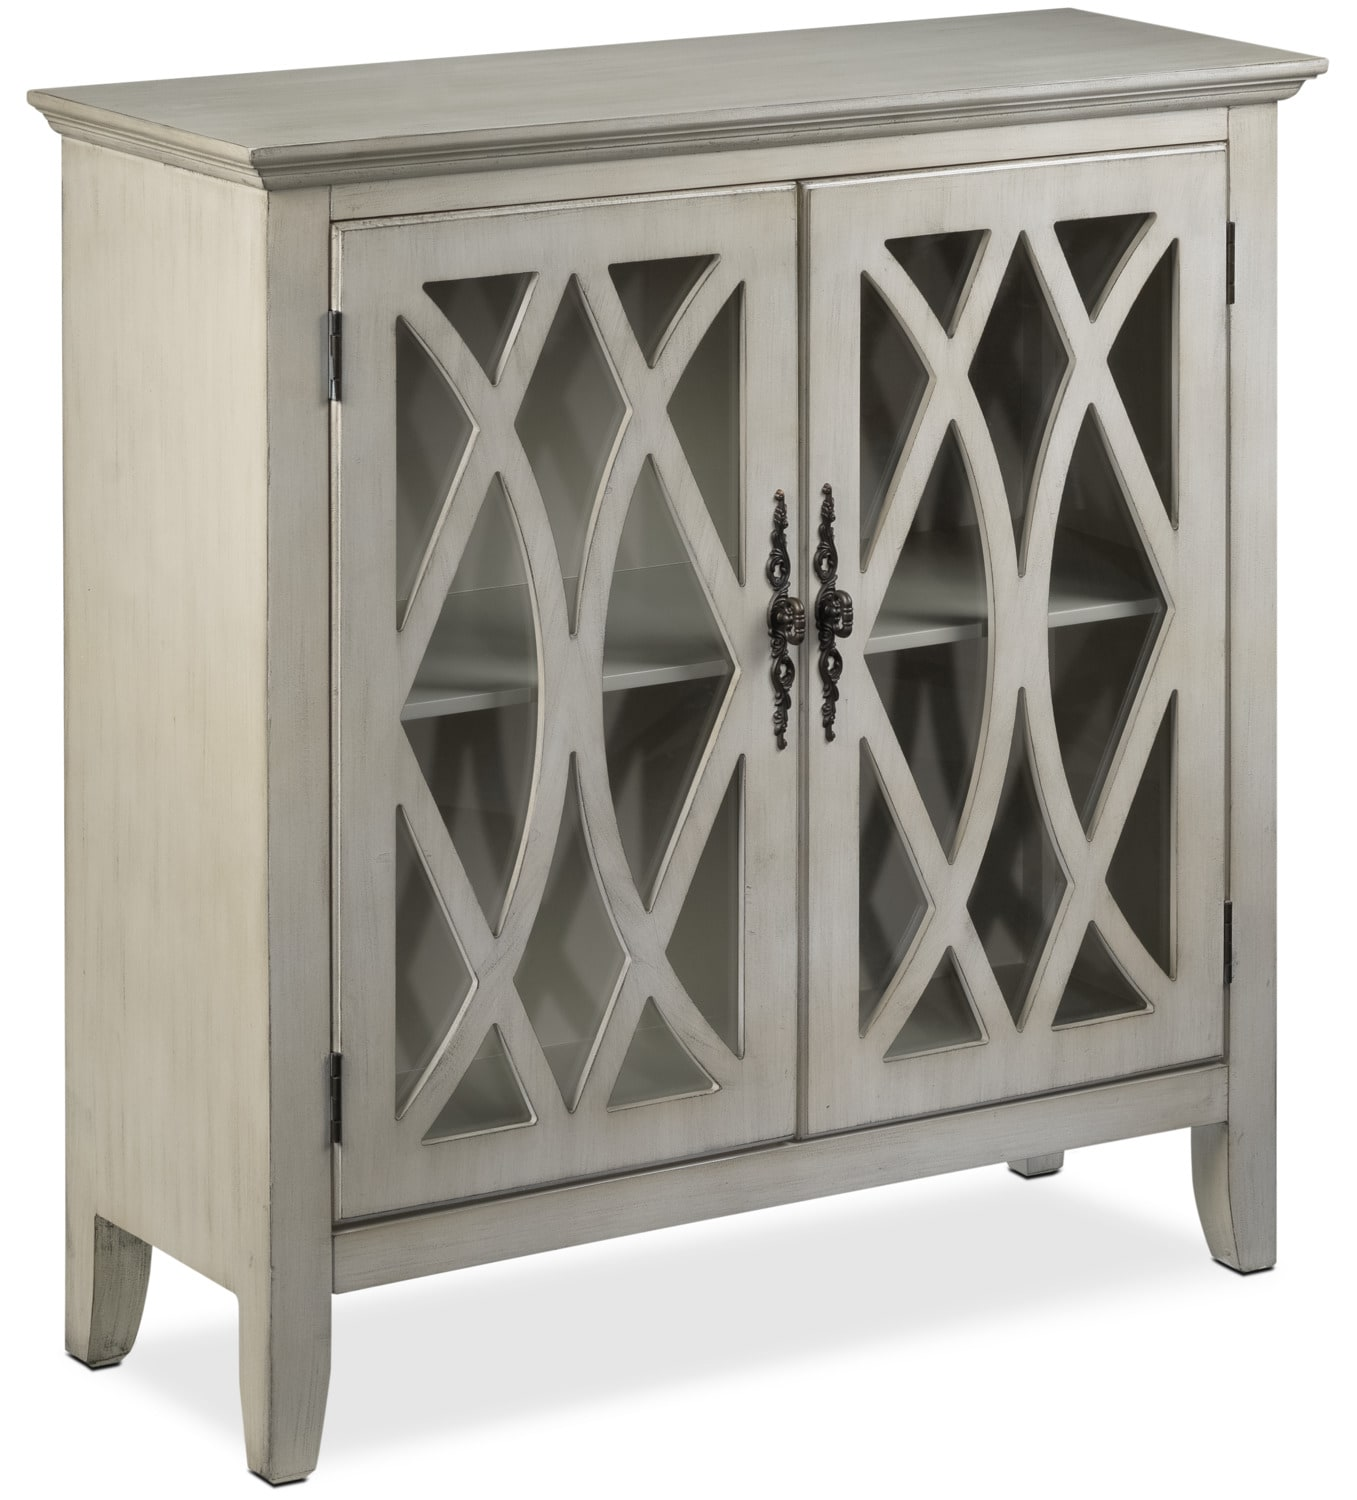 Accent and Occasional Furniture - Glennon Accent Cabinet - Weathered White